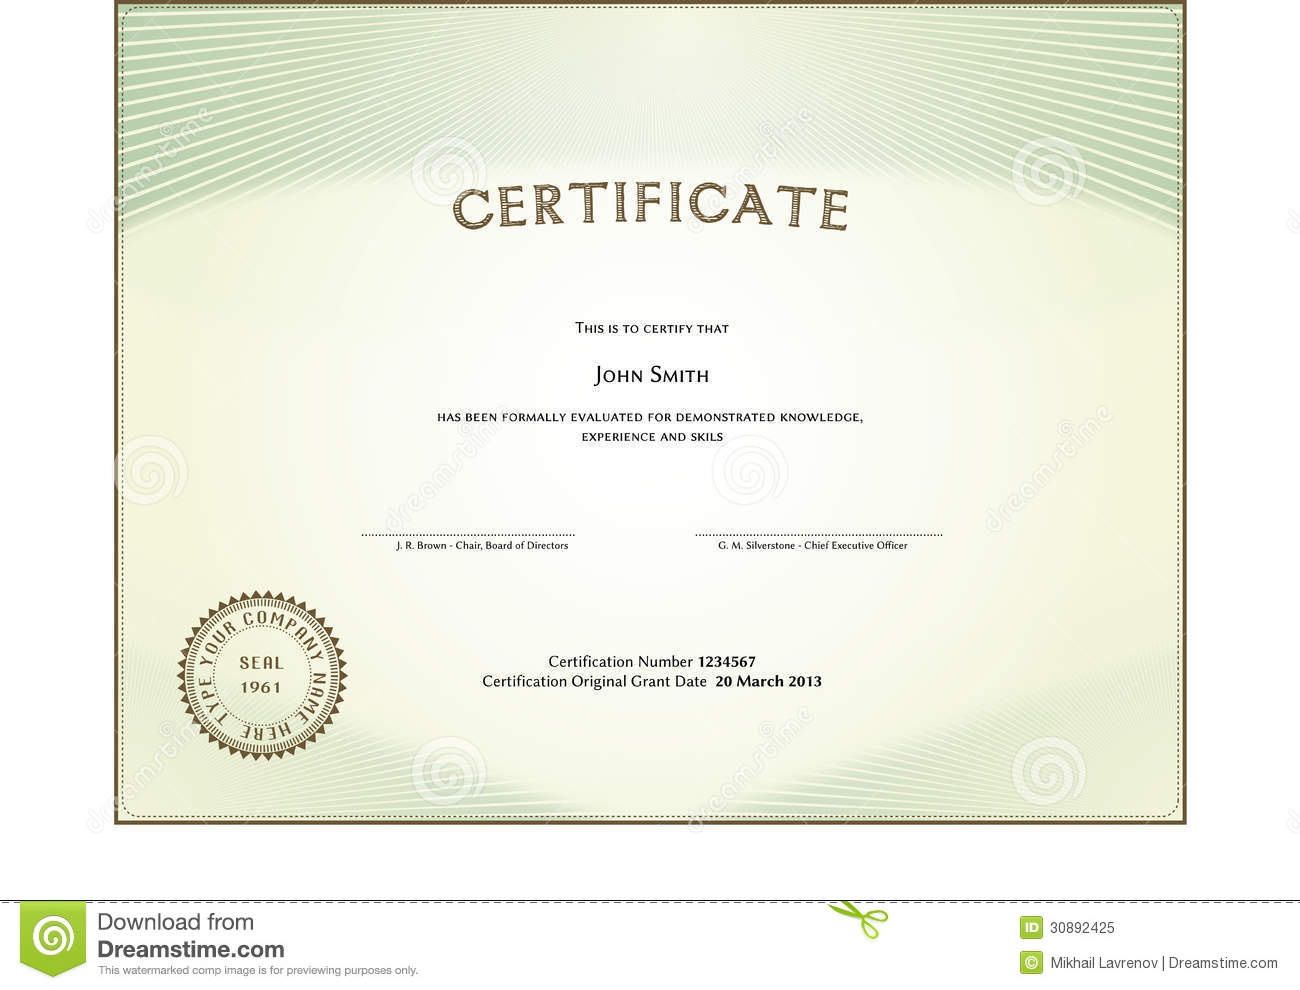 Certificate Form Royalty Free Stock Photo - Image: 30892425